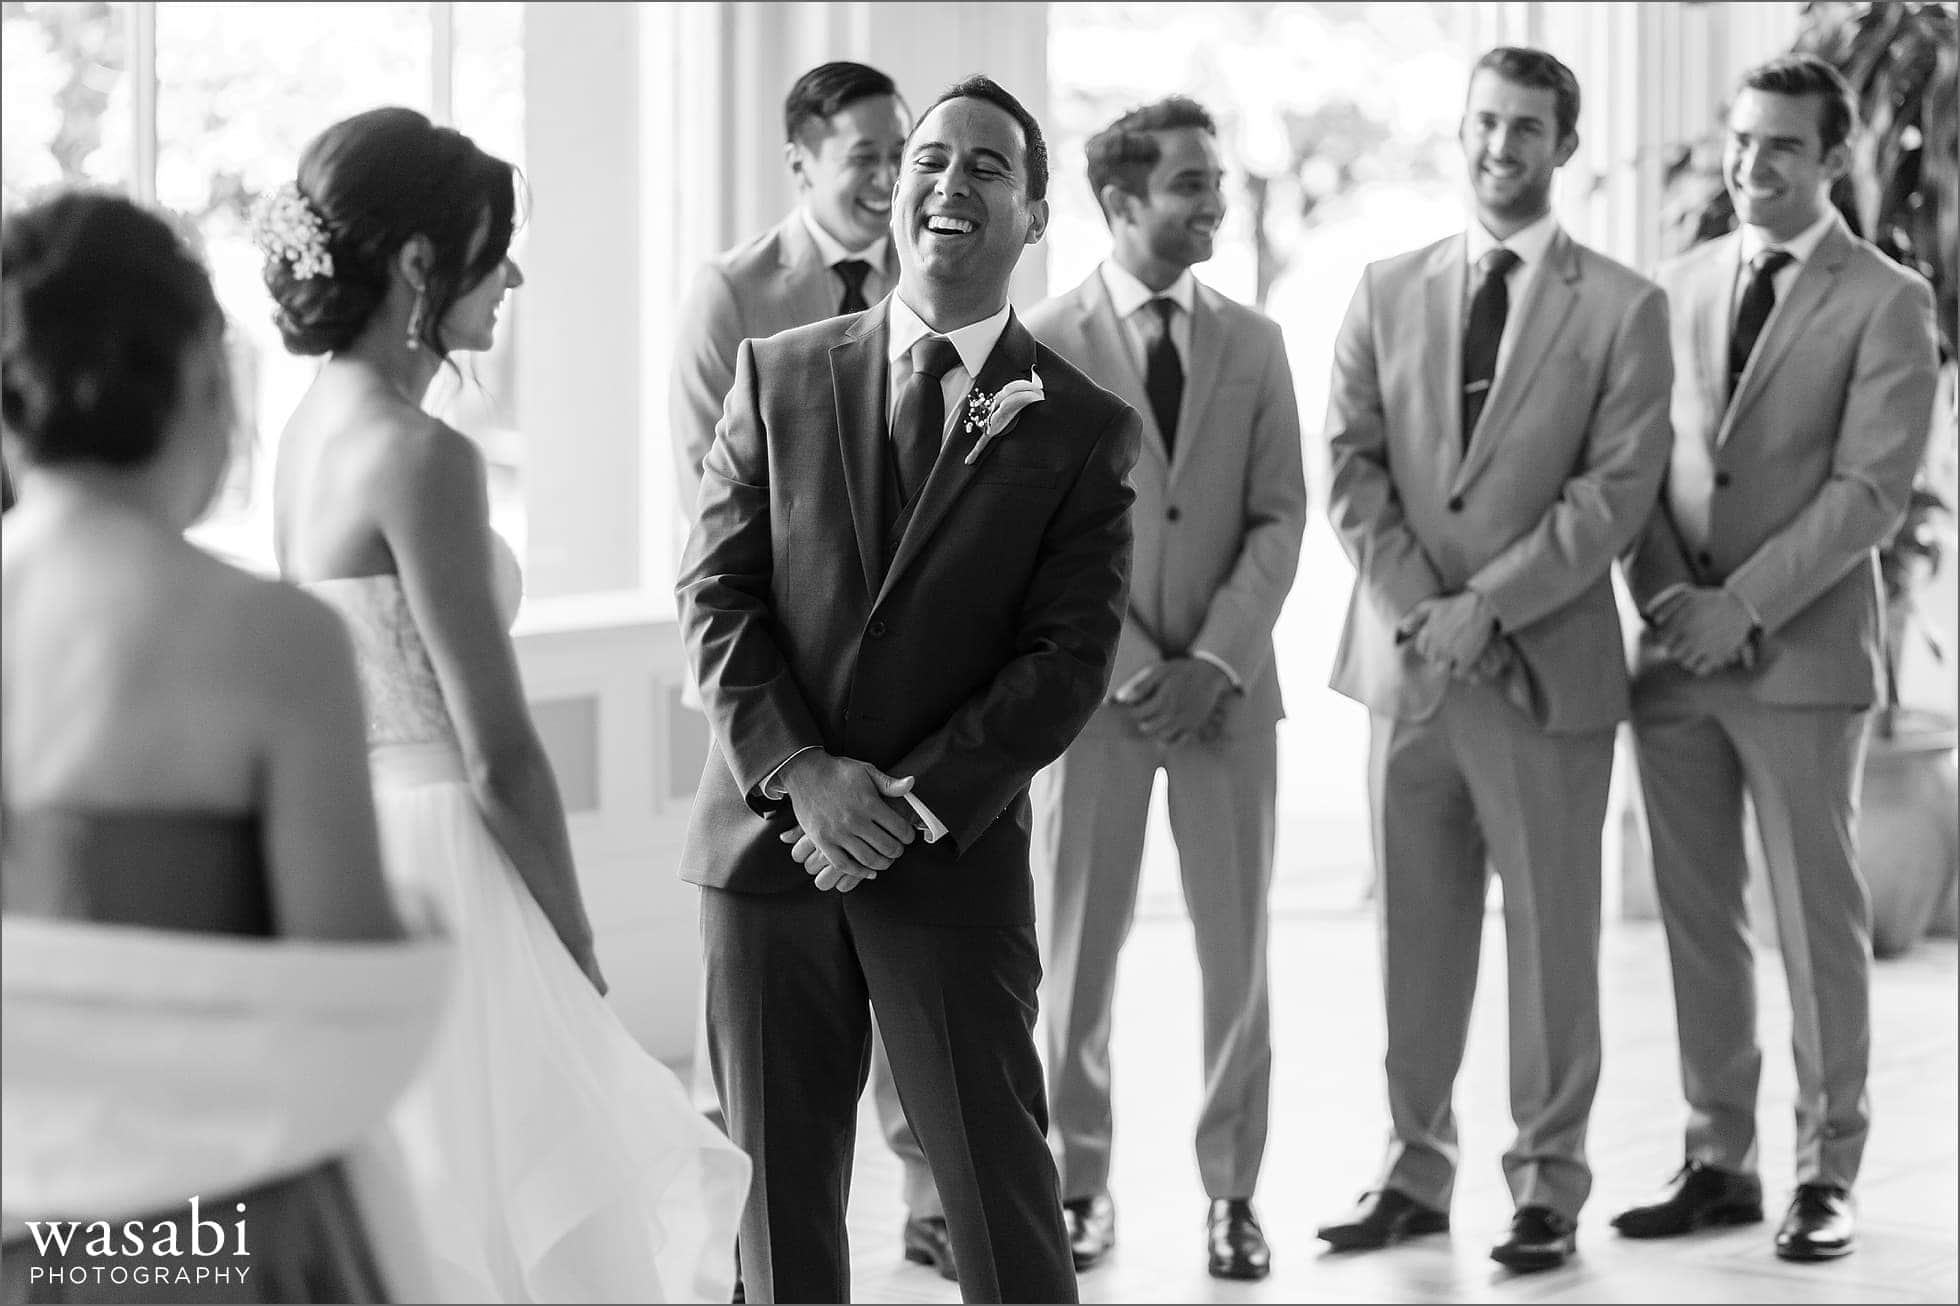 groom laughs during wedding ceremony at South Shore Cultural Center